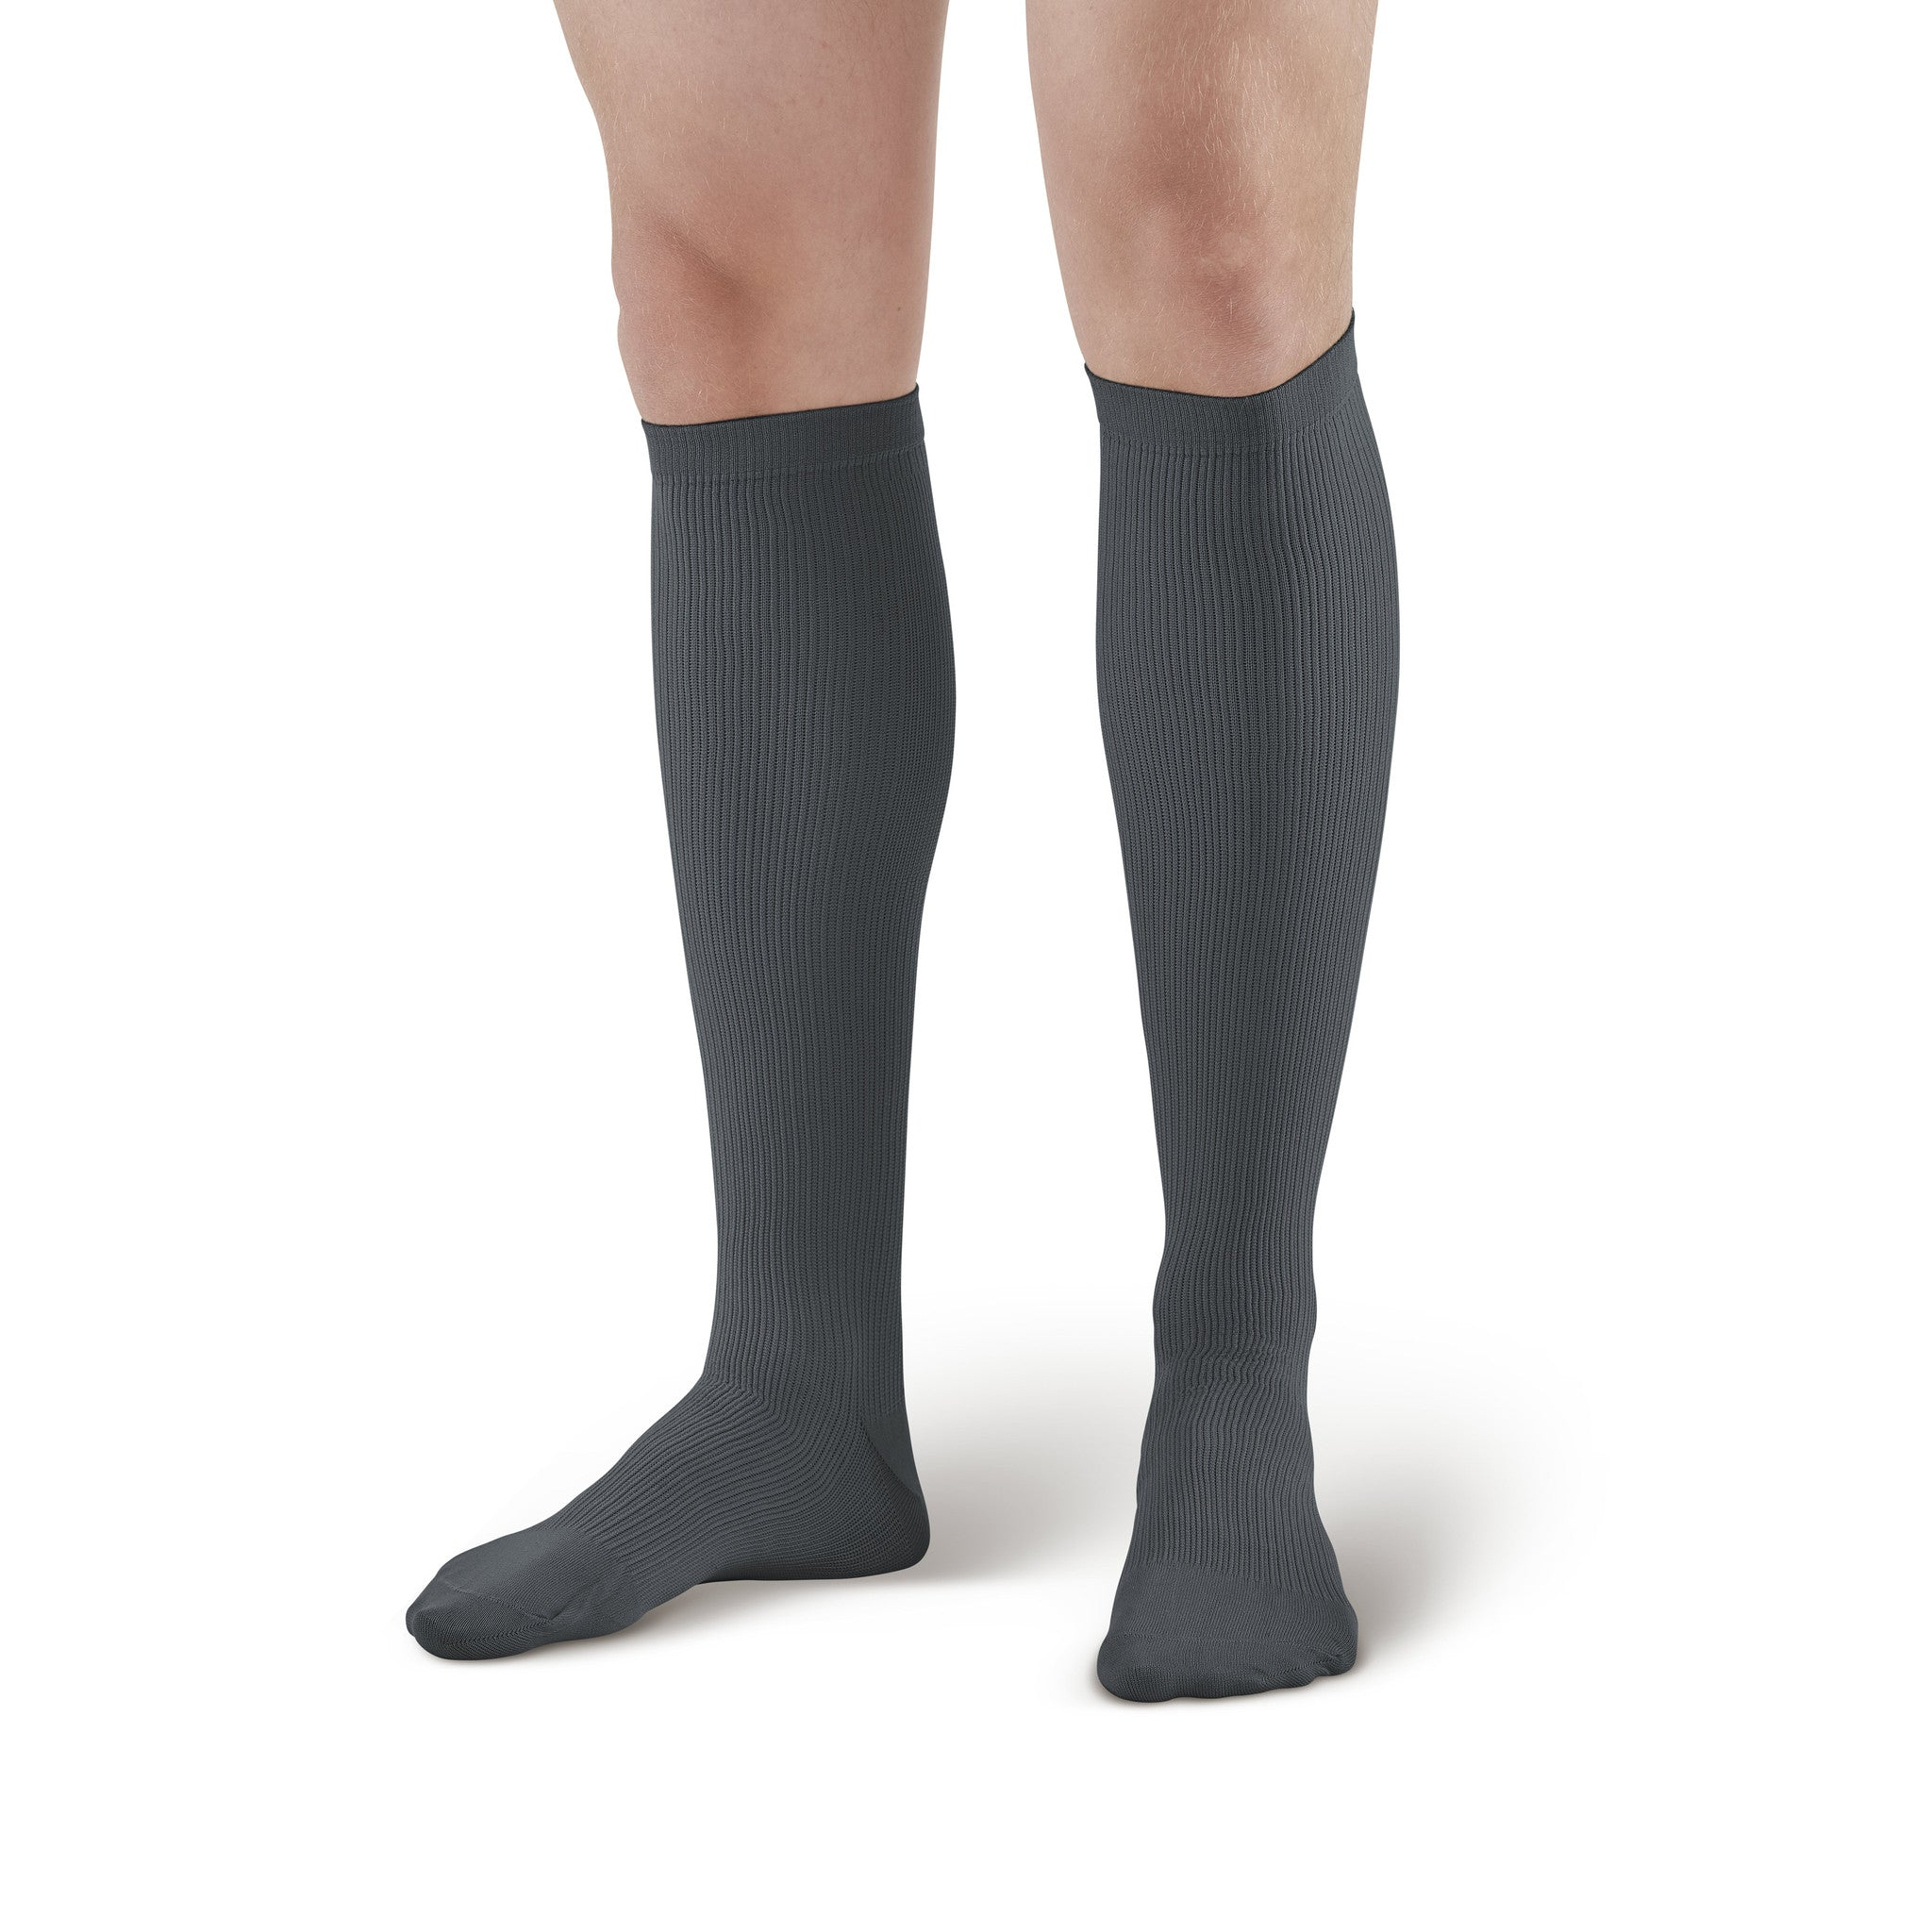 a382caf69 Ames Walker Knee High Compression Socks 20-30 mmHg | Low Price Guarantee